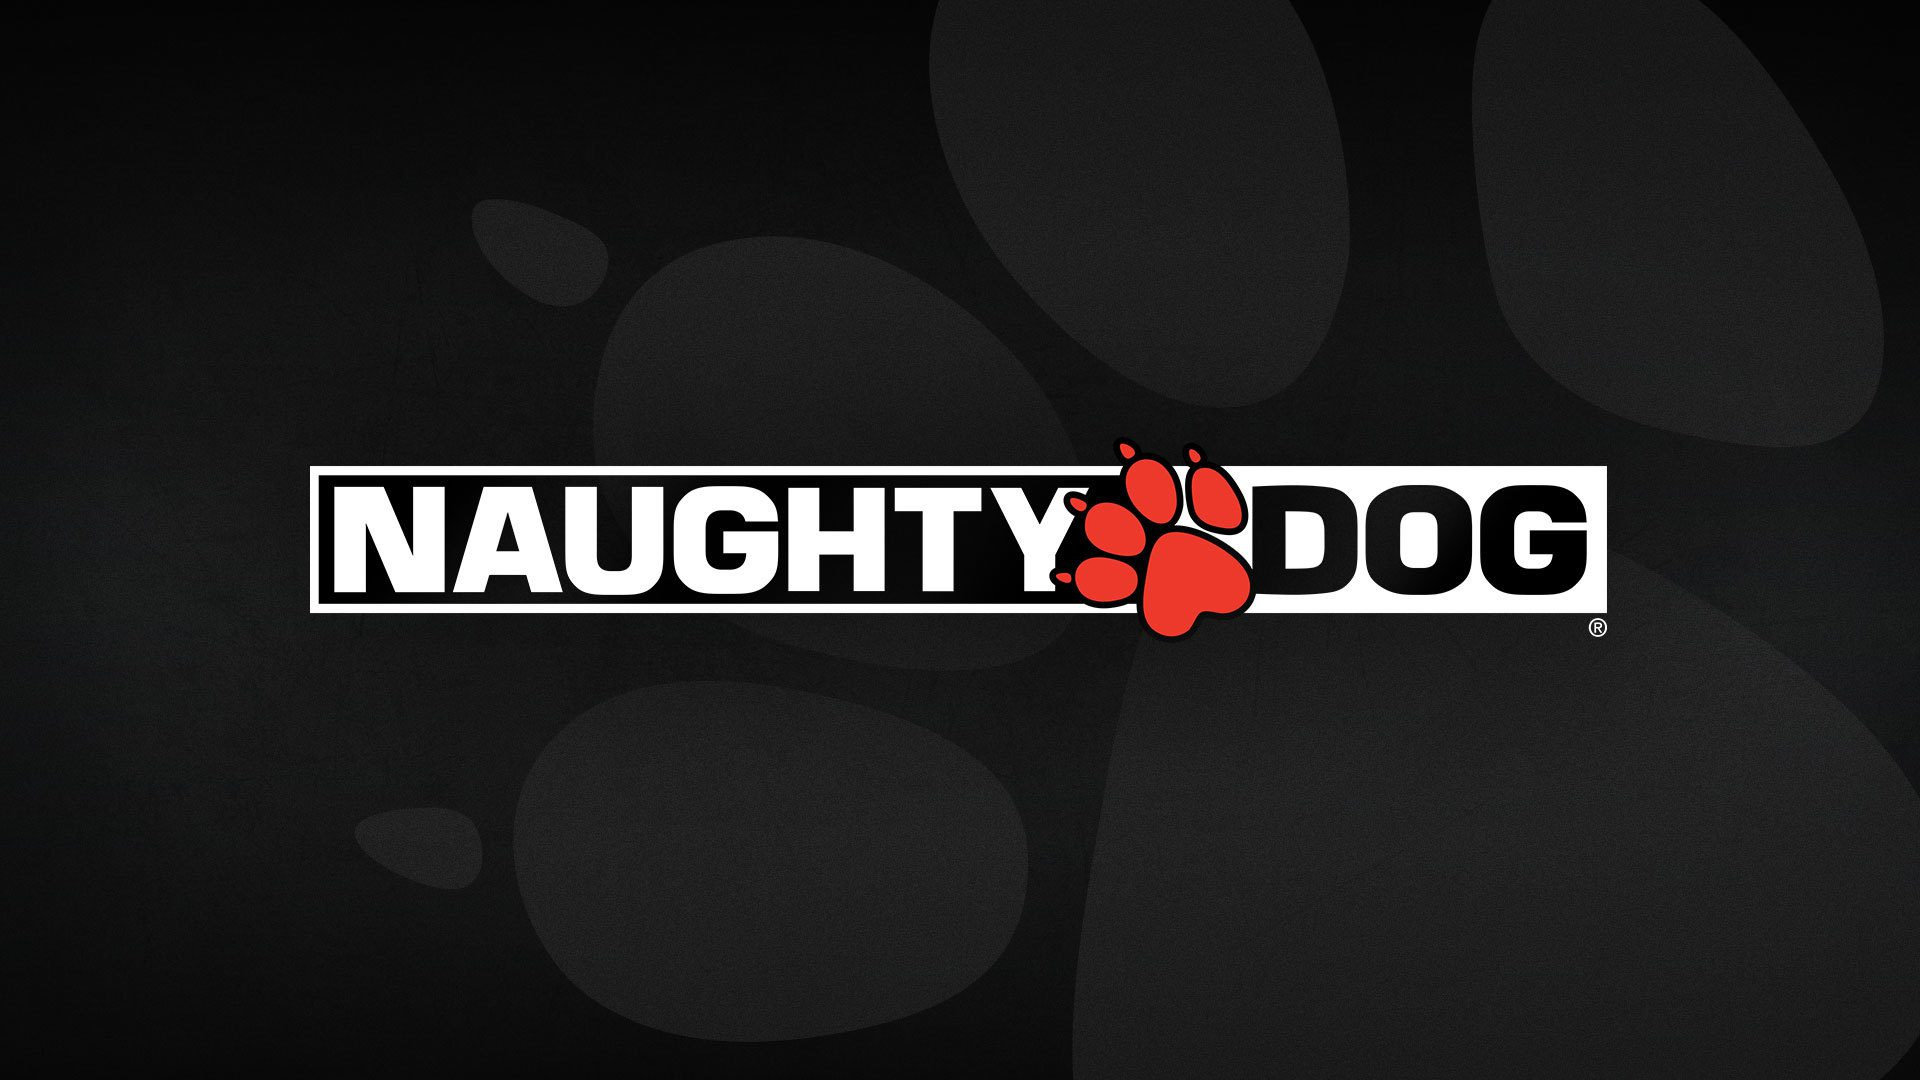 Neil Druckmann Promoted To Co-President Of Naughty Dog